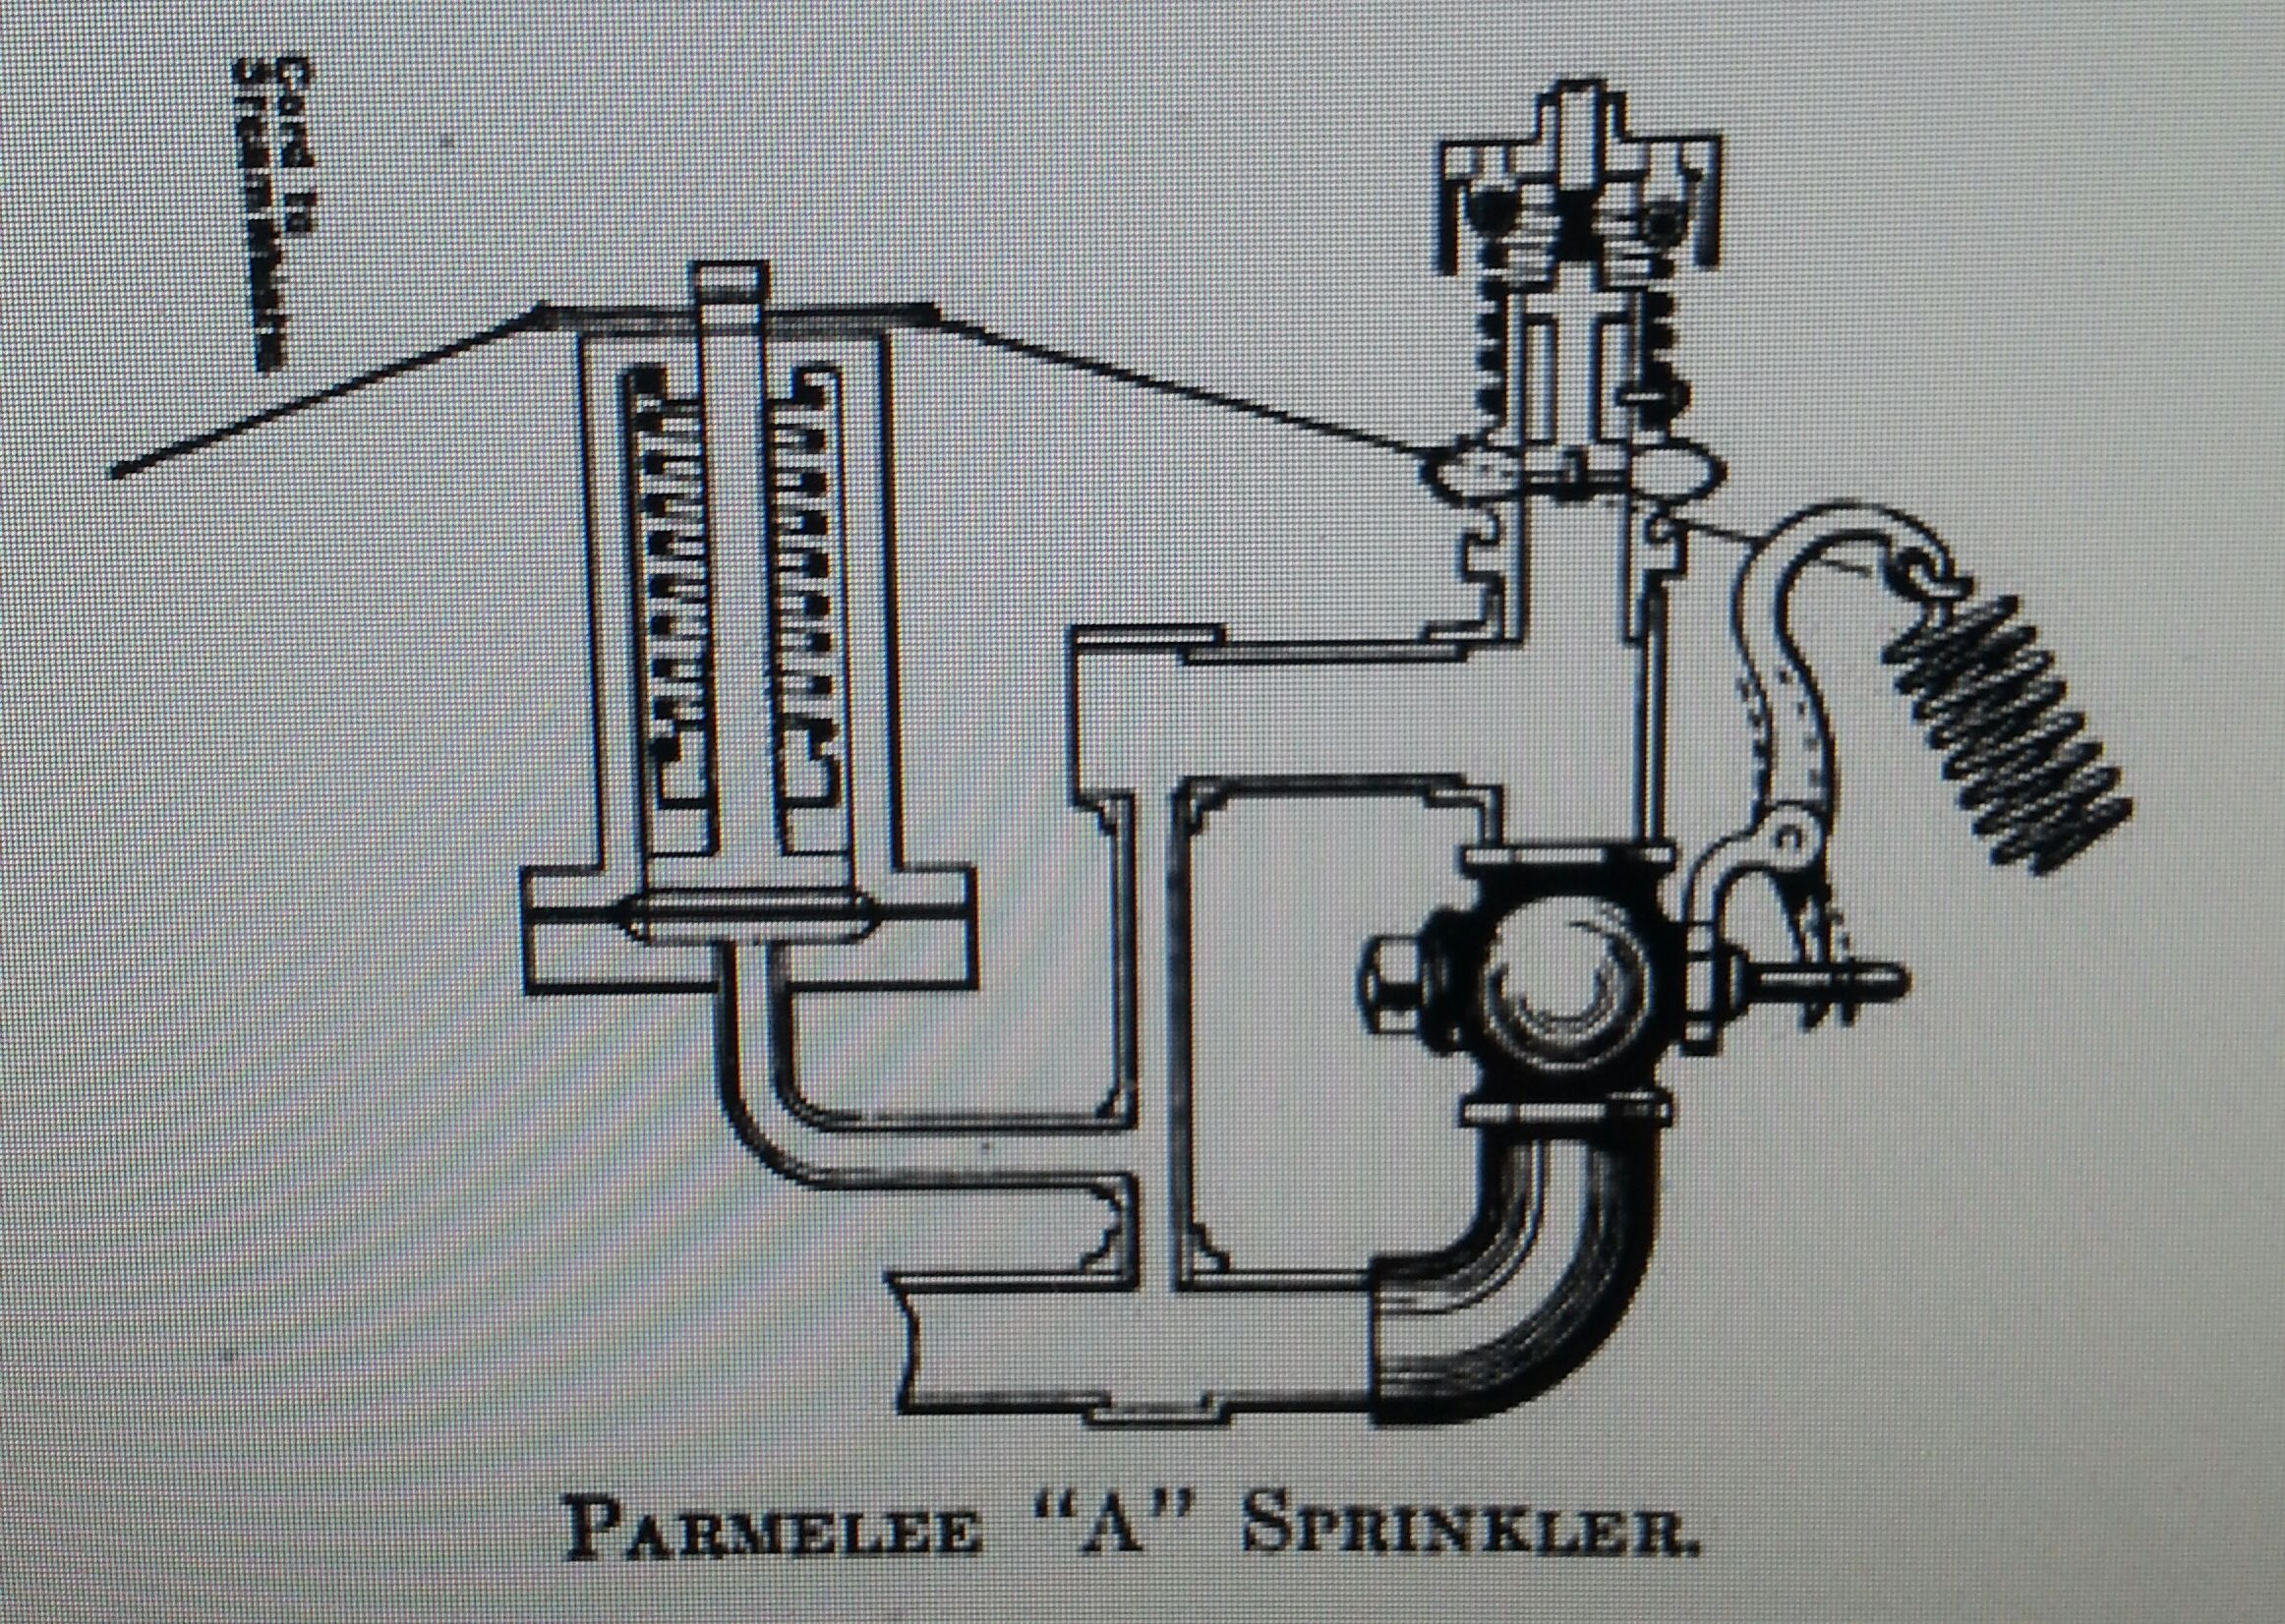 Henry s parmelee is credited with inventing the first automatic henry s parmelee is credited with inventing the first automatic sprinkler head to be used geenschuldenfo Choice Image